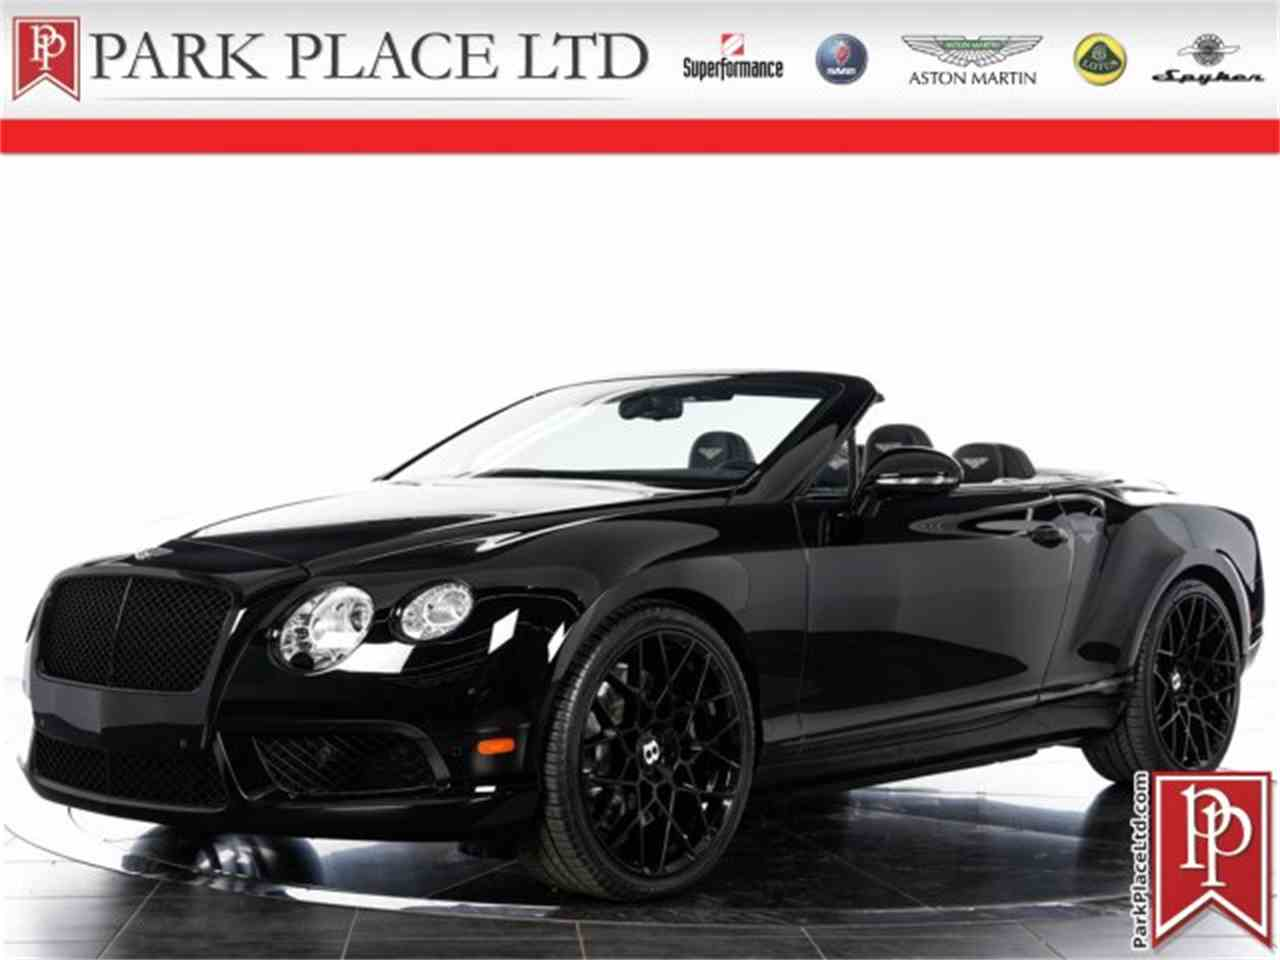 Park place motors bellevue washington best place 2017 for Park place motors bellevue